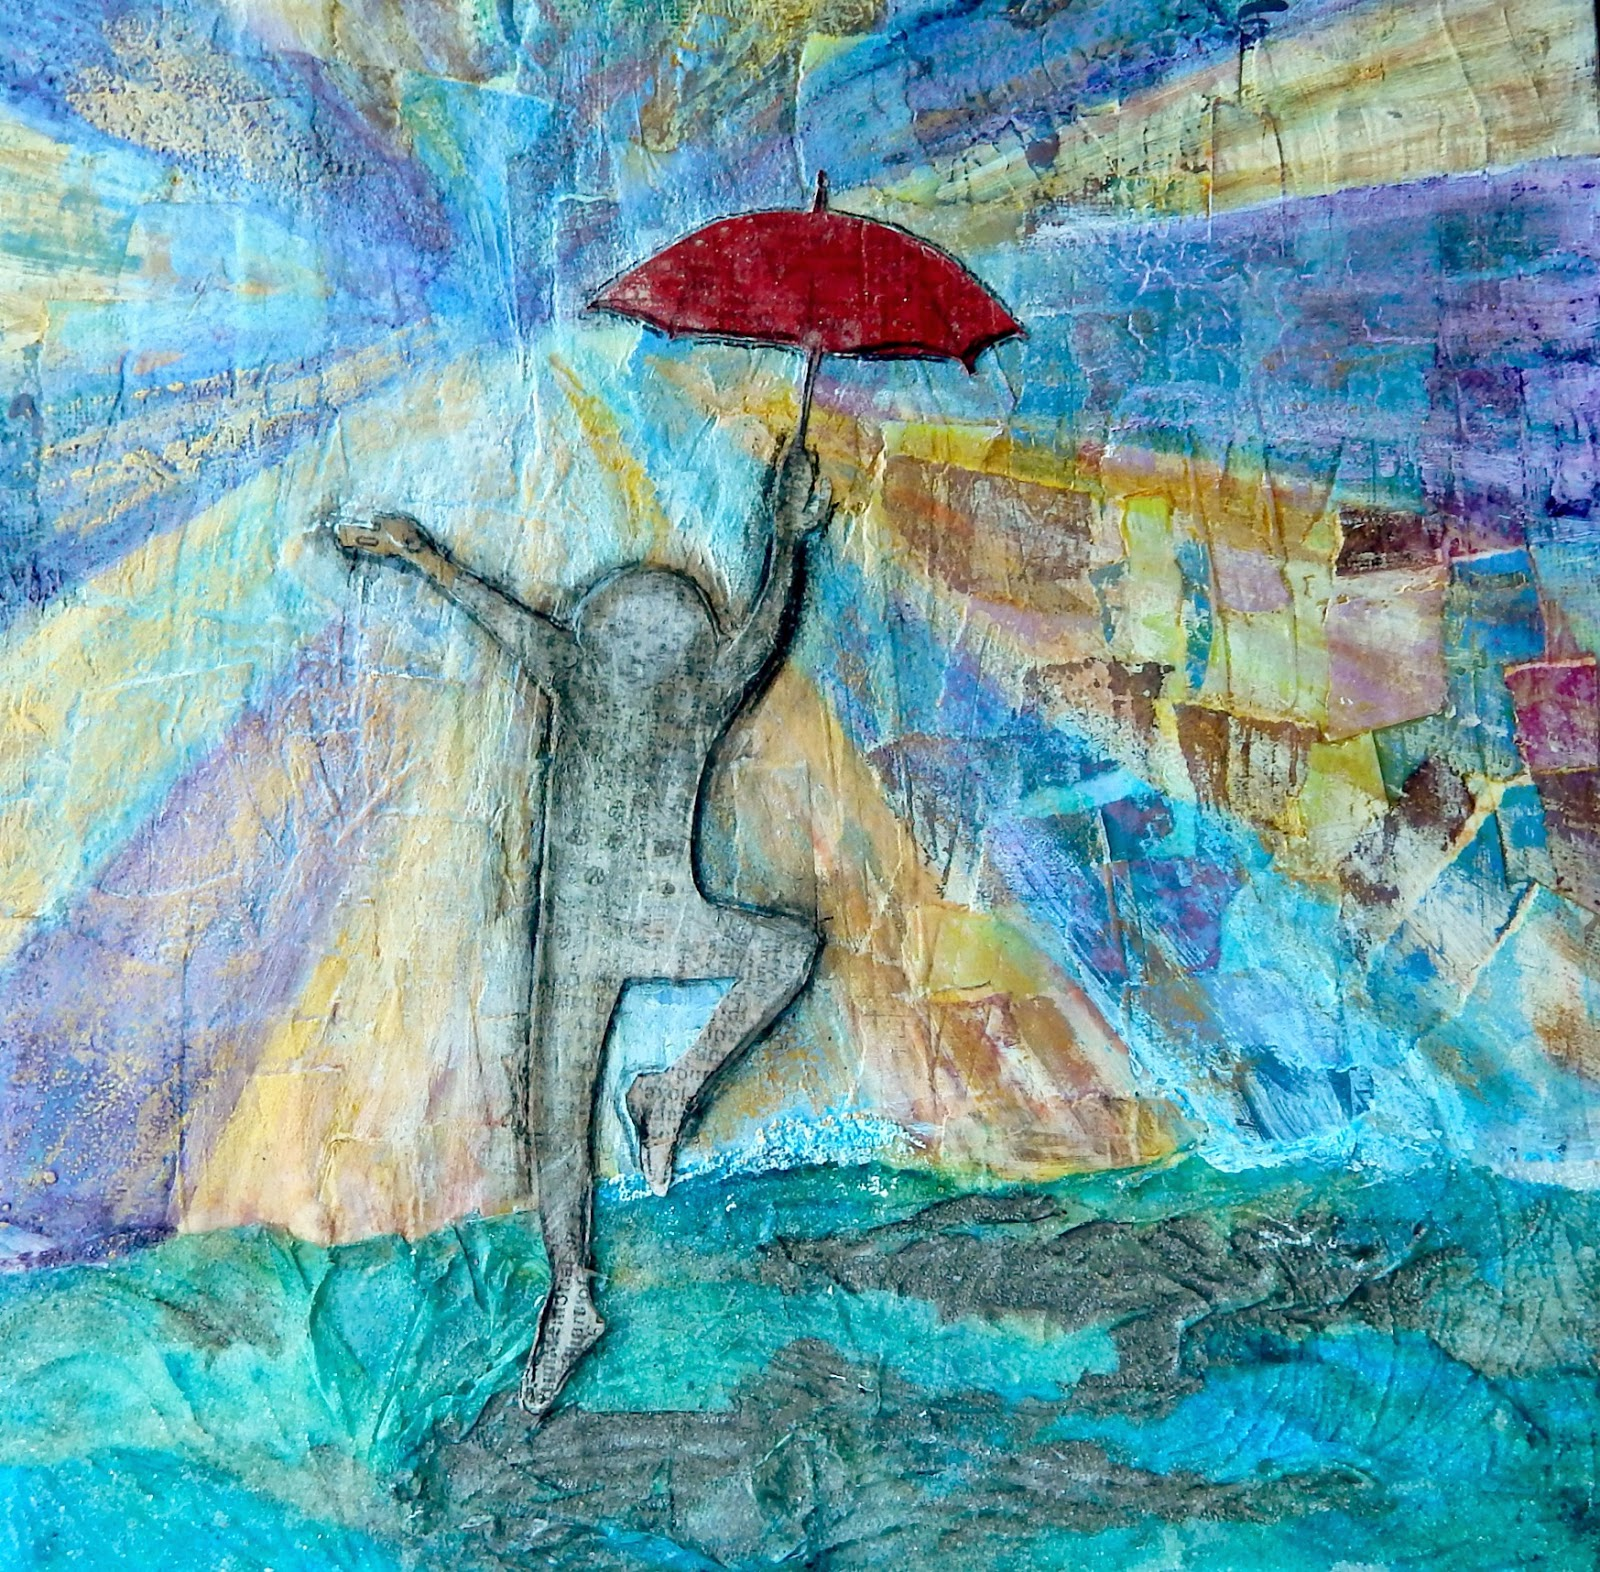 Collage, Mixed Media, Art of Faith North West, Red Umbrella, Umbrella